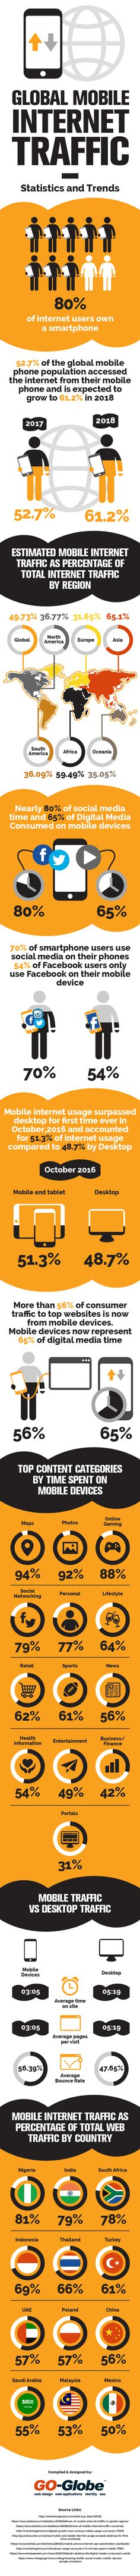 More than half of internet usage now occurs on a mobile or tablet device. Nearly 80% of social media time happens on a mobile phone. The stats you need to know in this infographic